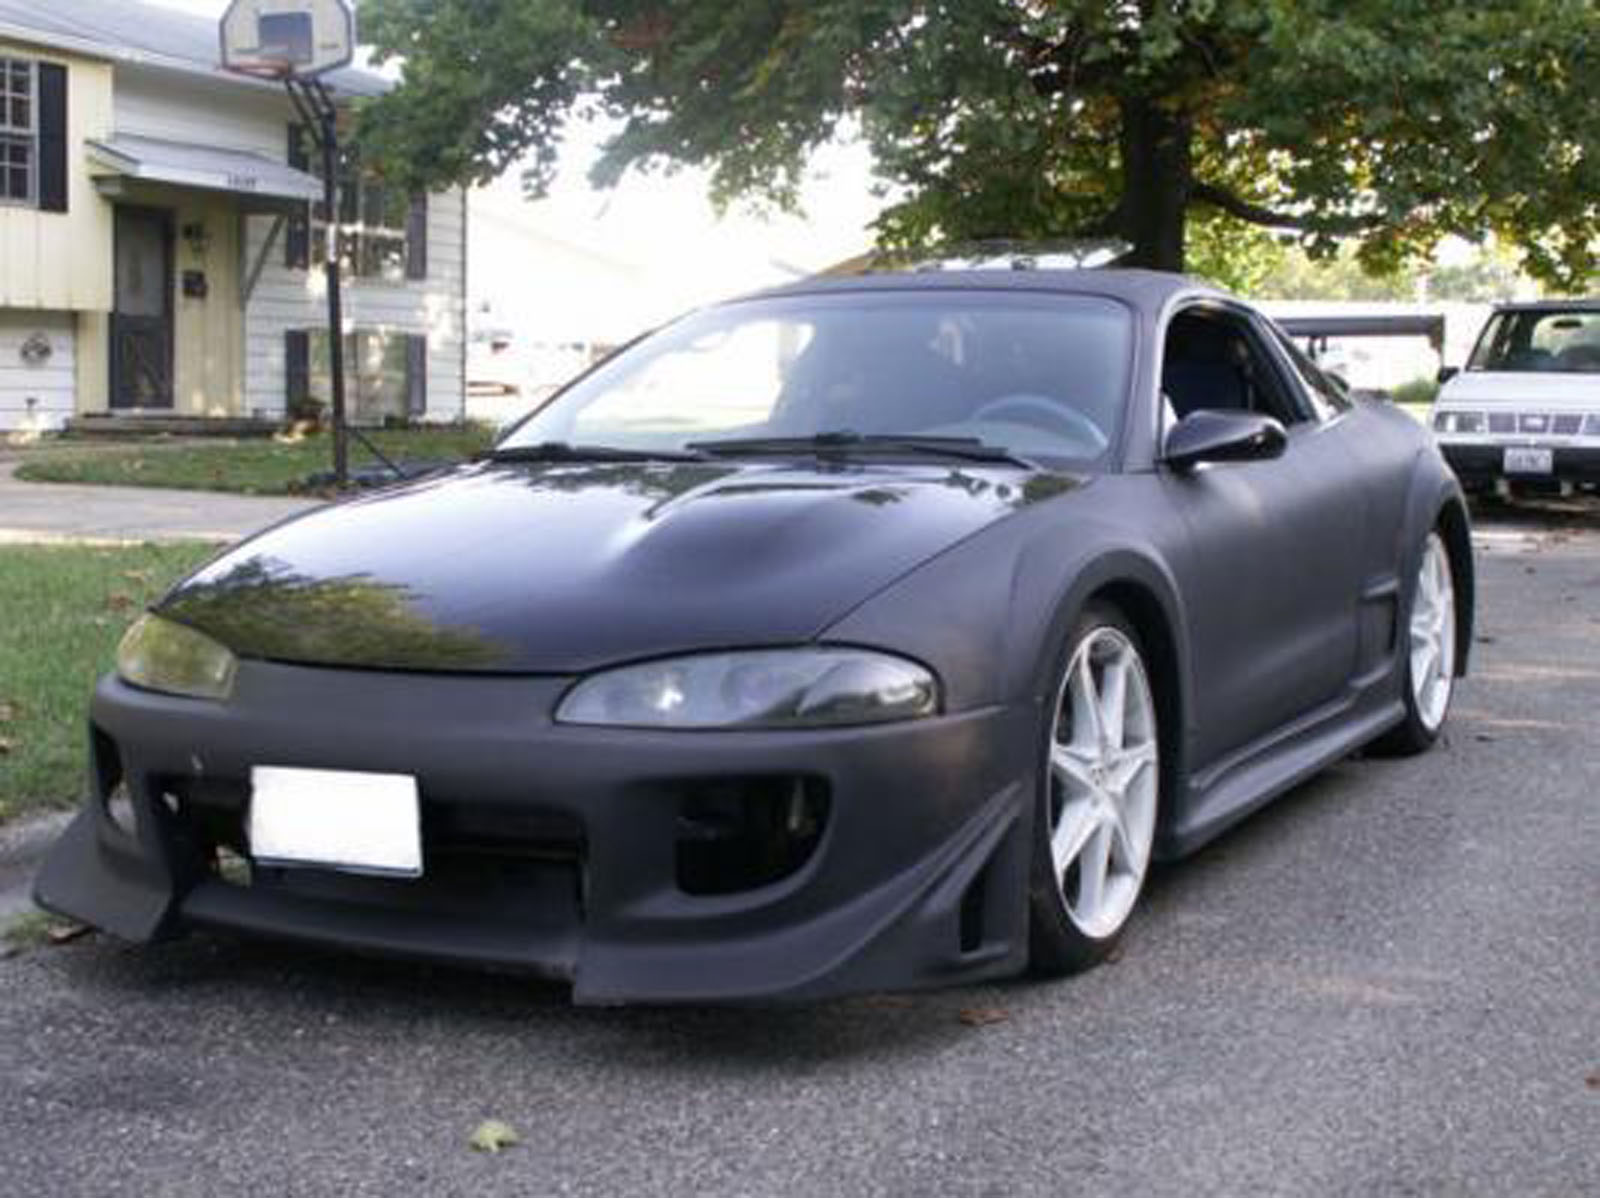 1995 Mitsubishi Eclipse GST For Sale | Monticello Illinois